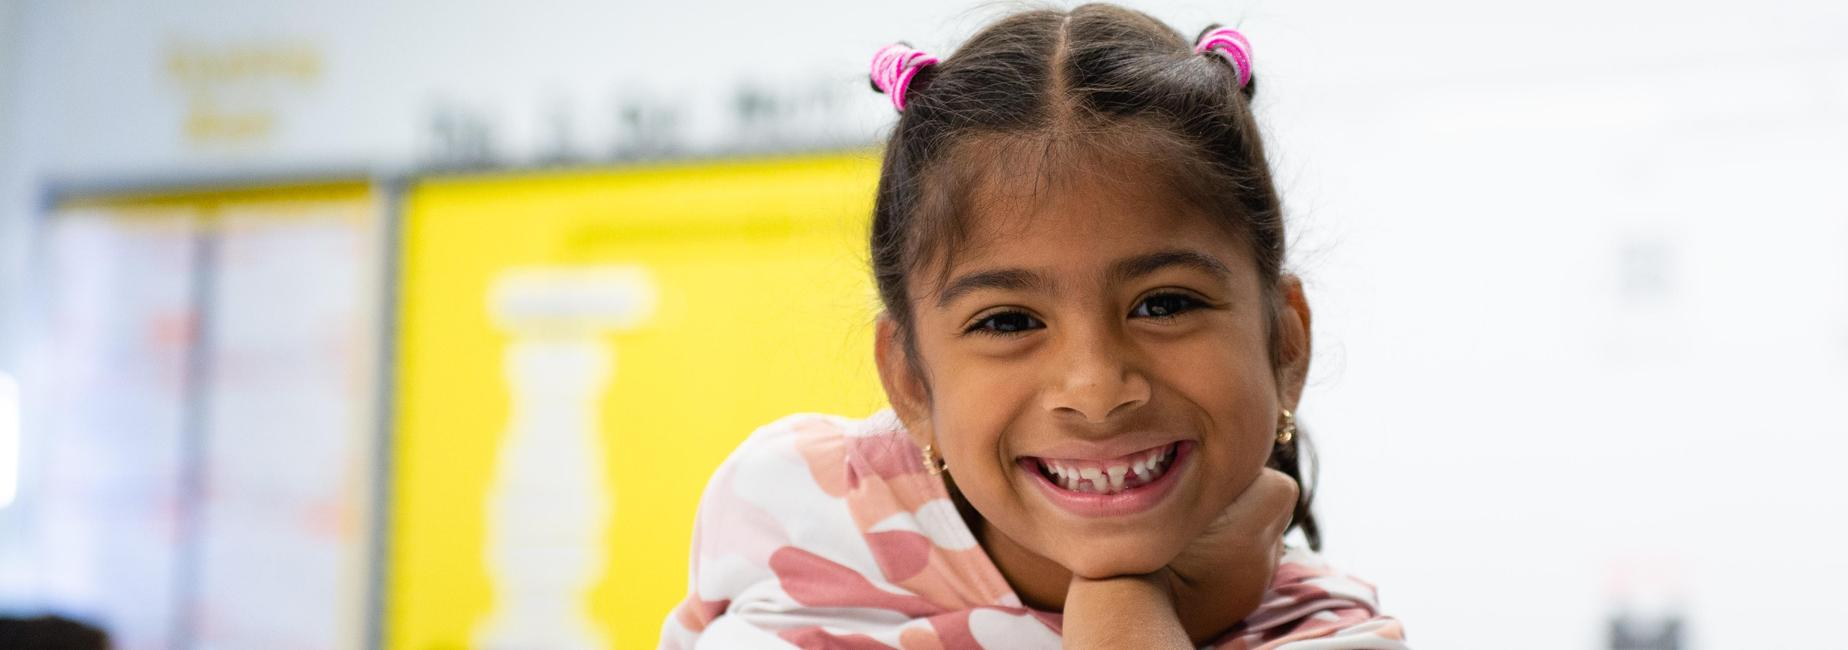 An elementary school student smiling at the camera.